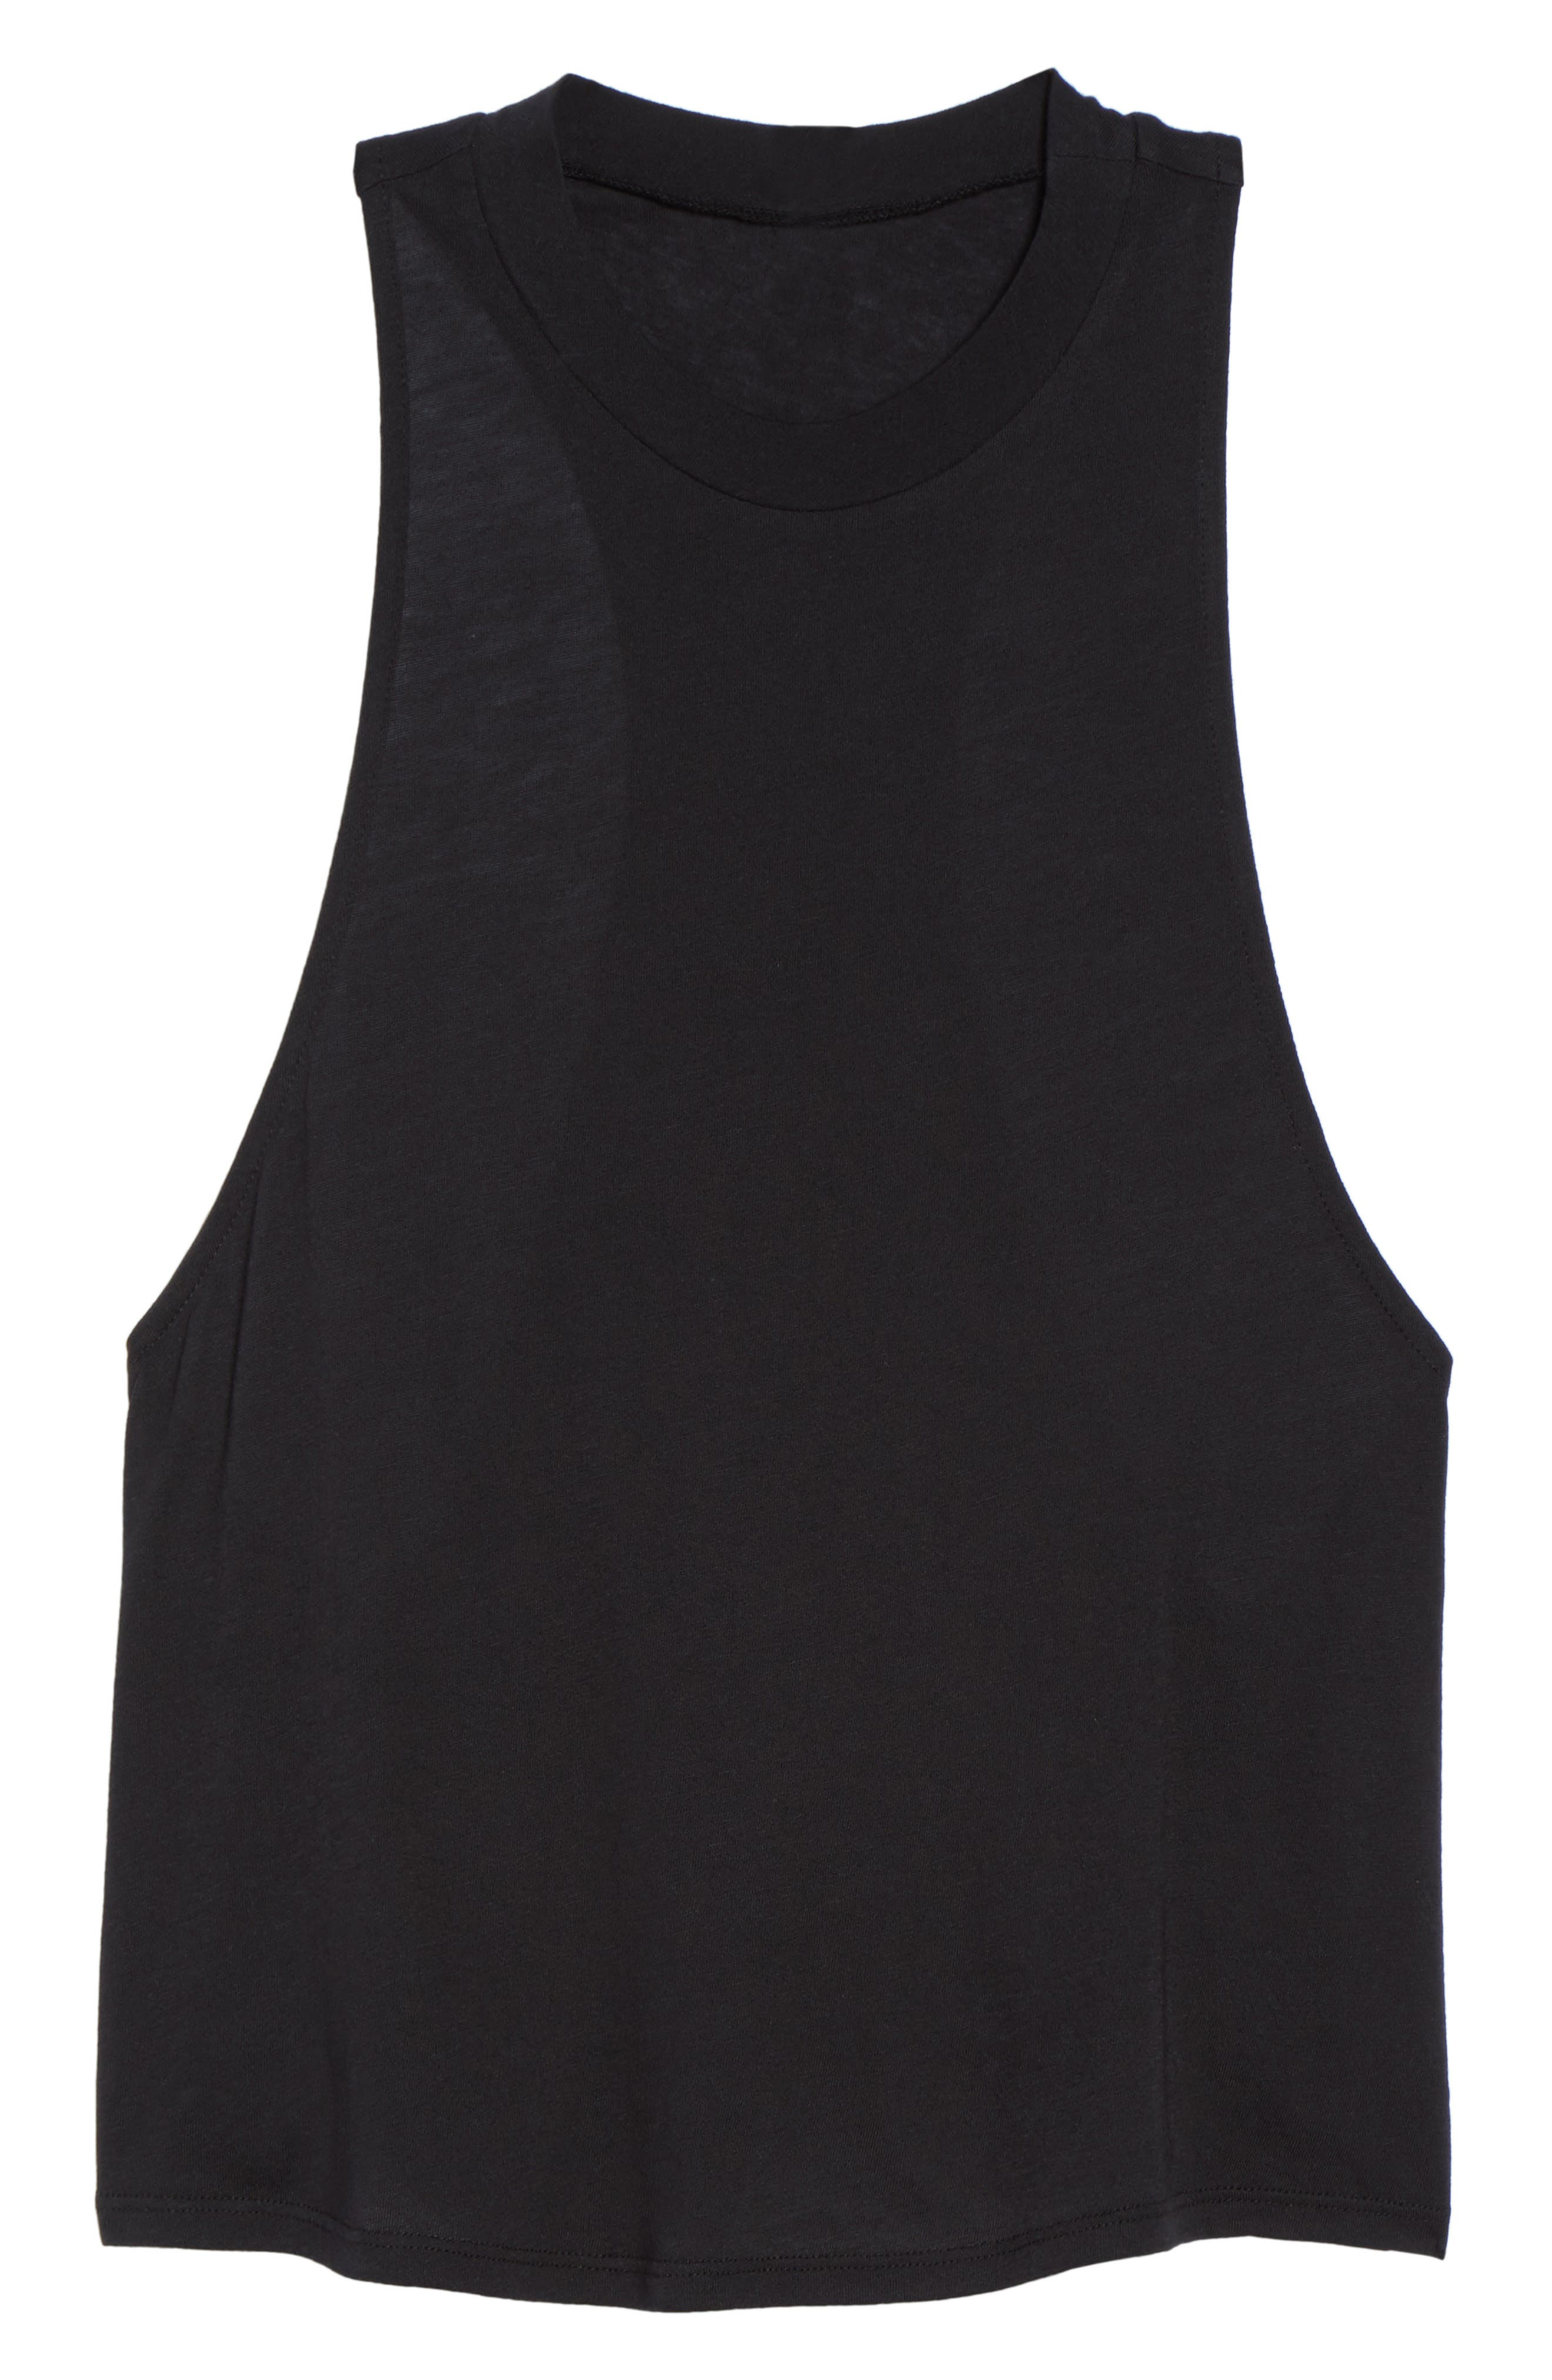 Flex Tank,                             Alternate thumbnail 7, color,                             Black